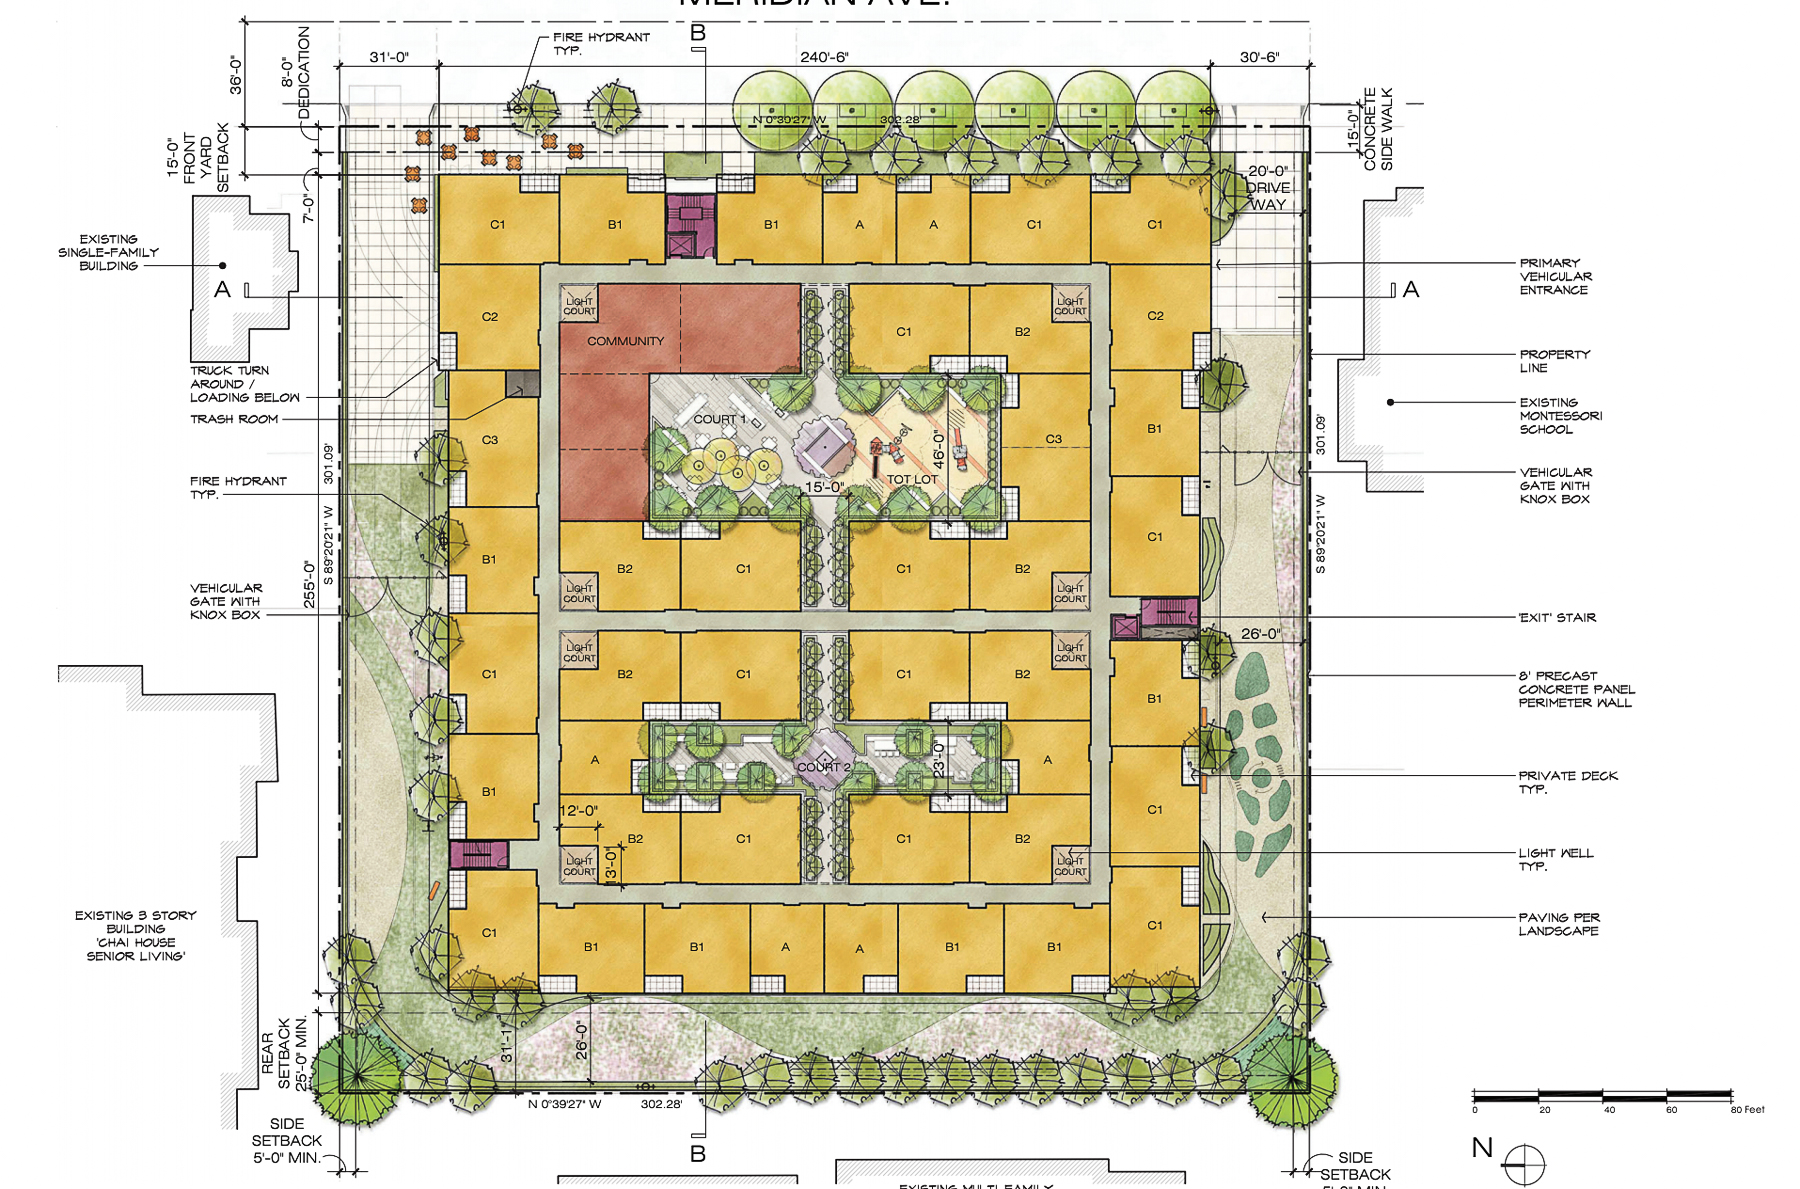 961-971 Meridian Avenue concept floor plan, illustration by Withee Malcolm Architects